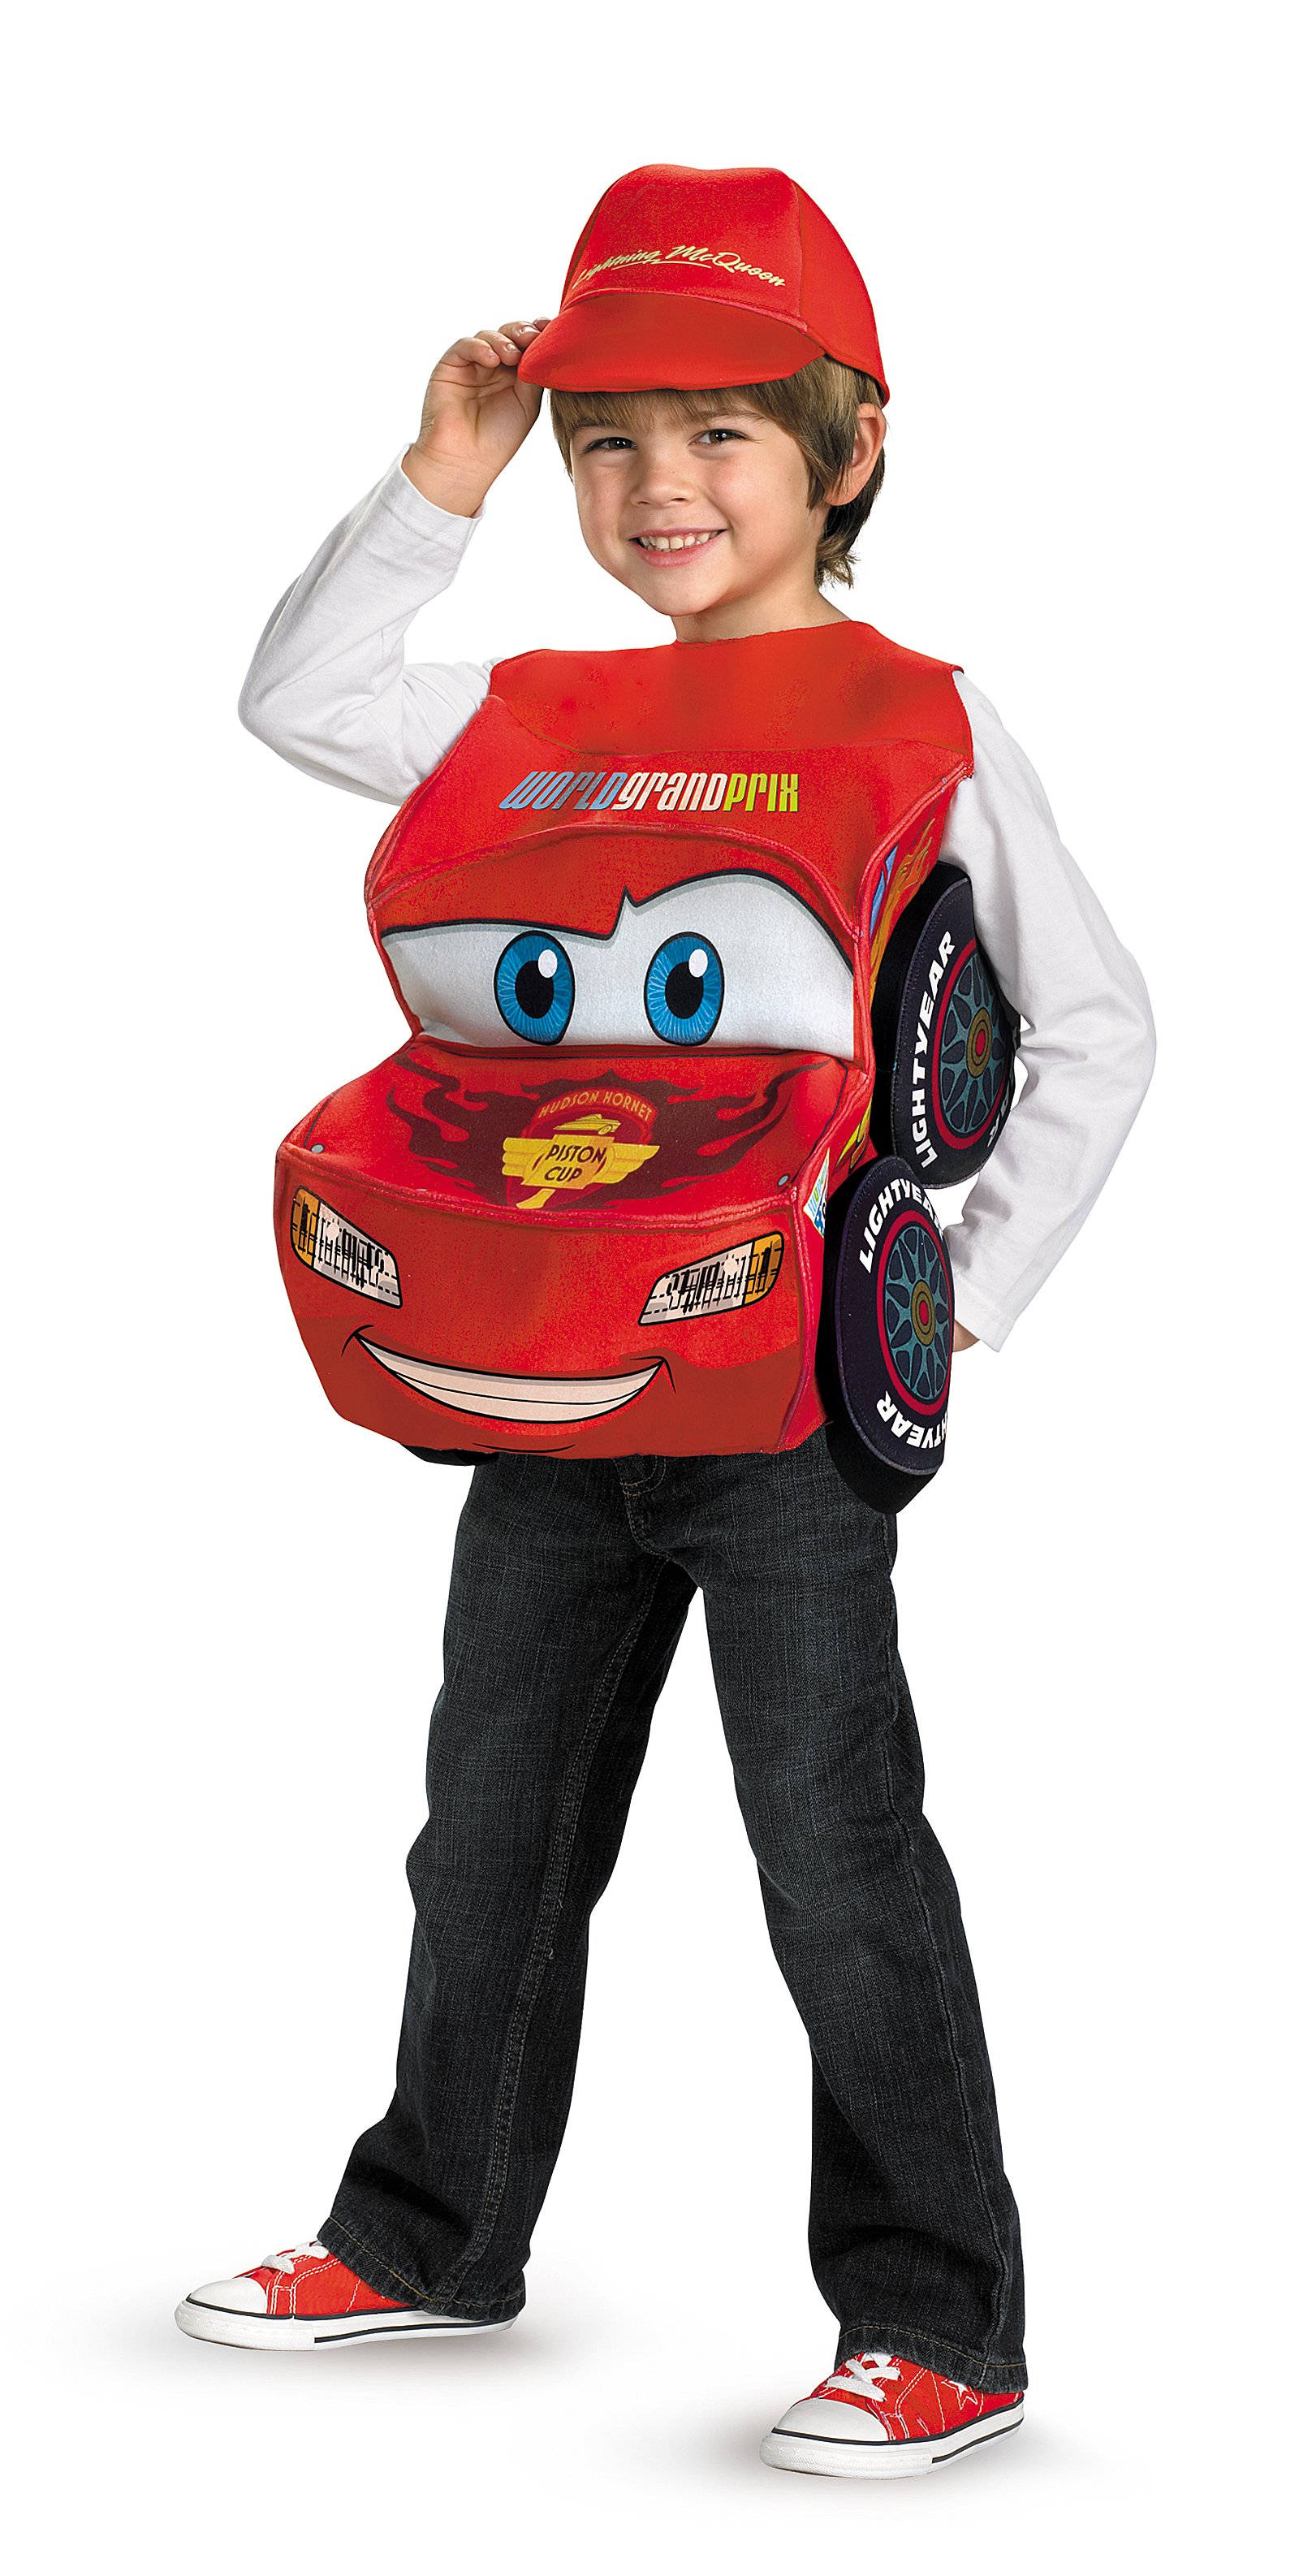 Cars 2 - Lightning McQueen Deluxe Child Costume